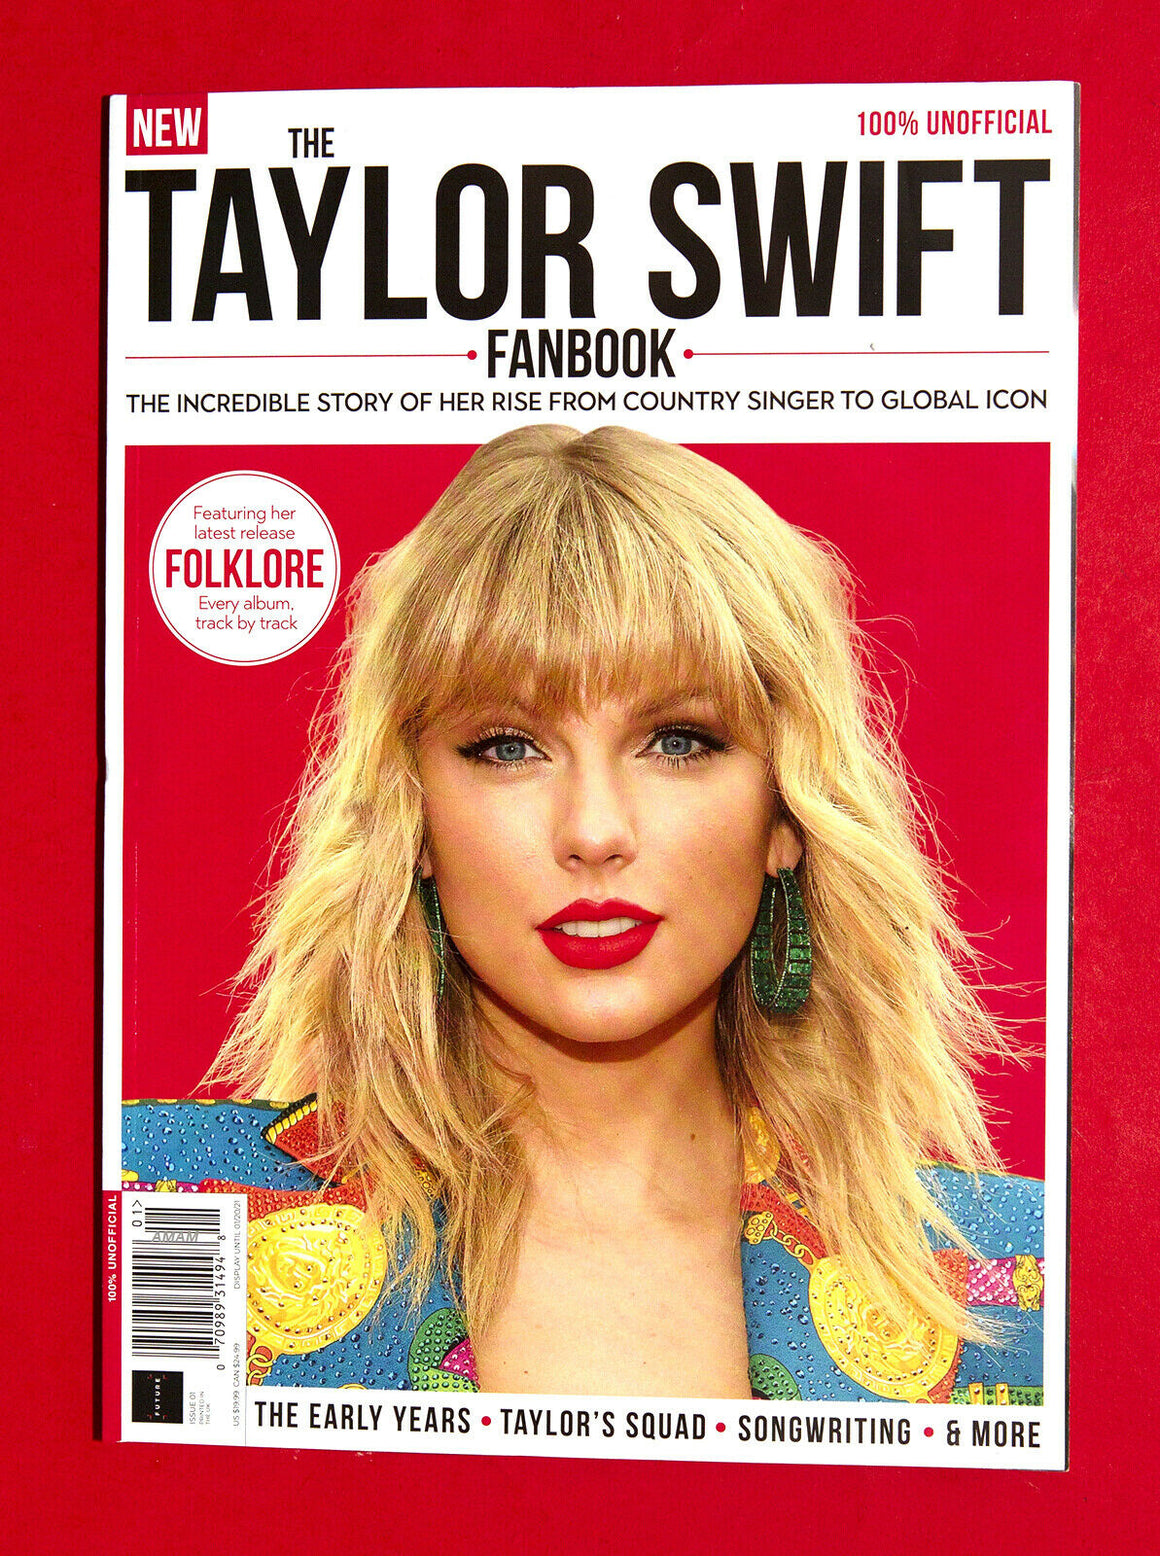 TAYLOR SWIFT FOLKLORE UK UNOFFICIAL COLLECTORS FANBOOK MAGAZINE WINTER 2020